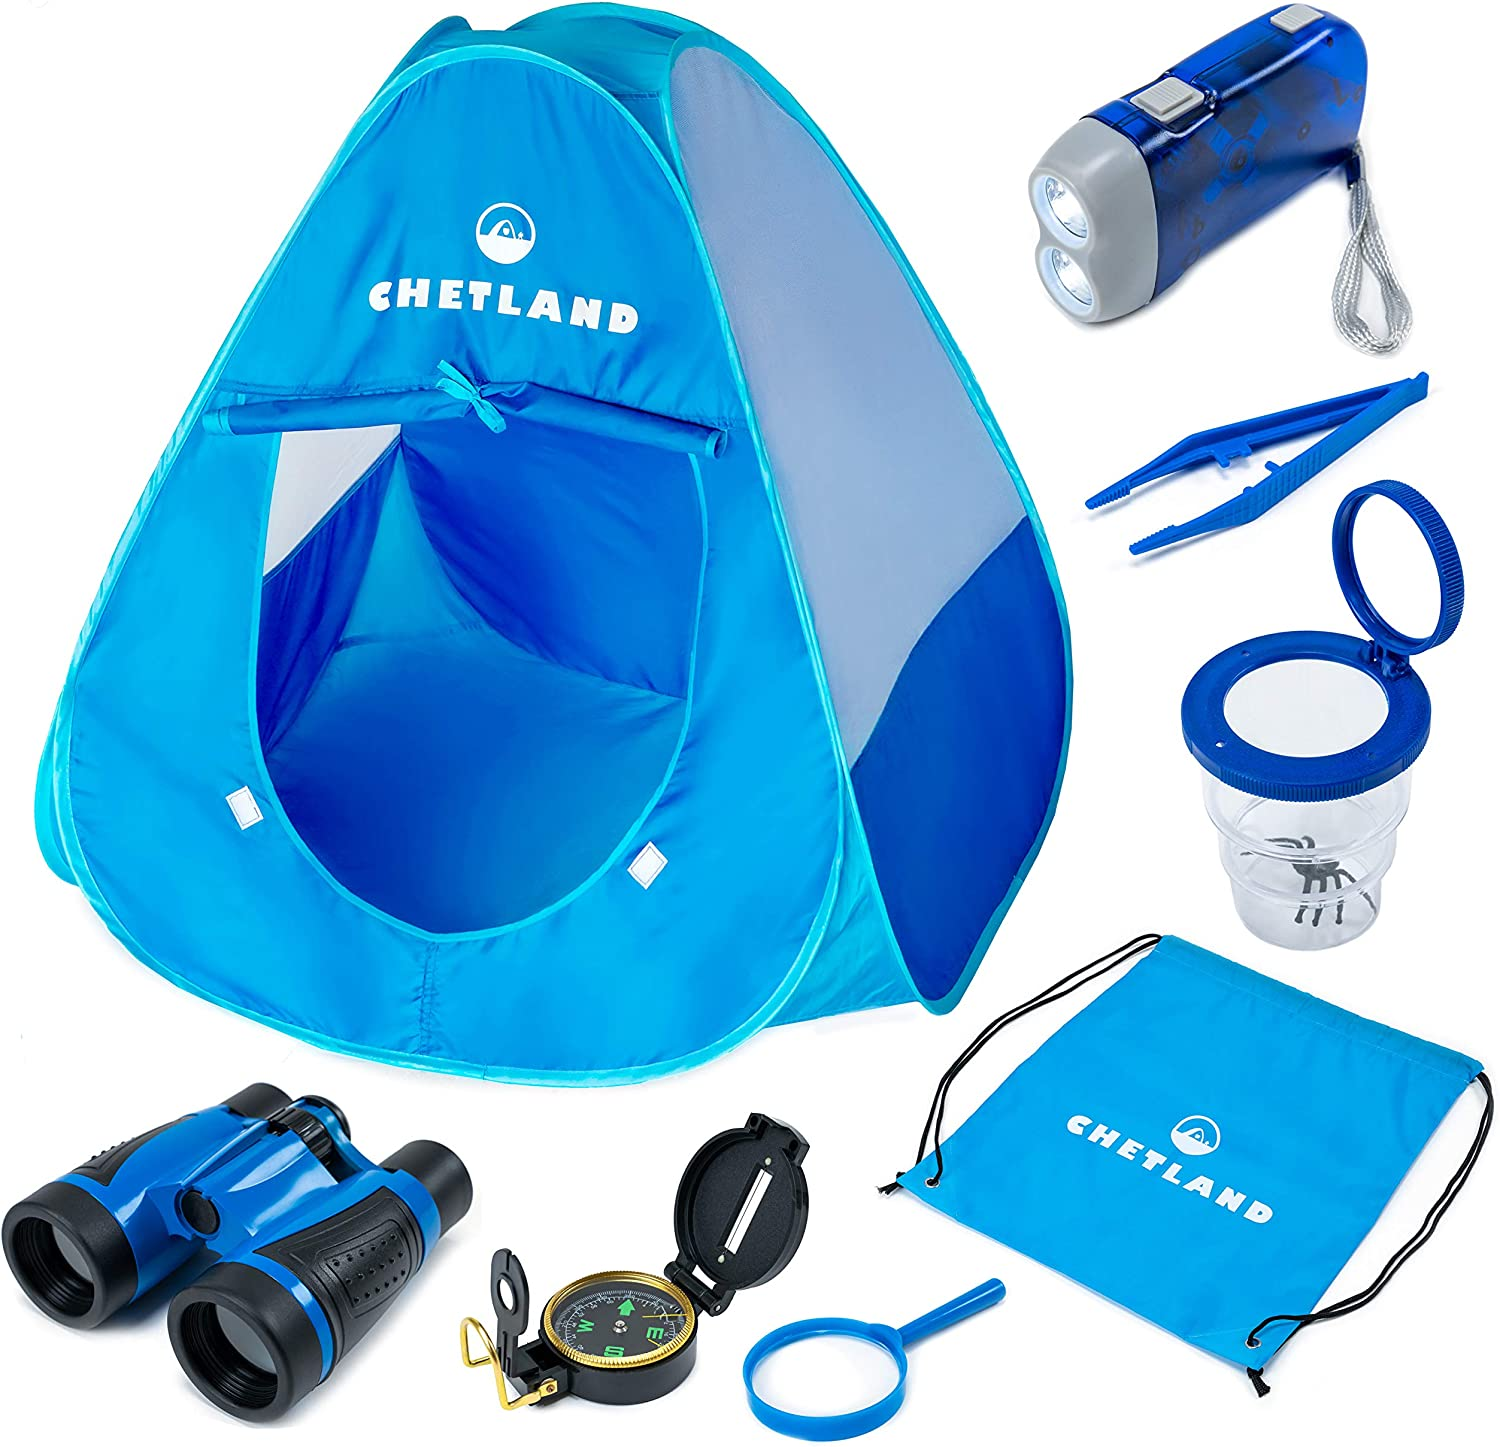 CHETLAND Kids Camping Set Toys Includes Pop Up Play Tent, Camping Gear Tools Adventure Gift Set for Boys and Girls - Blue/Blue